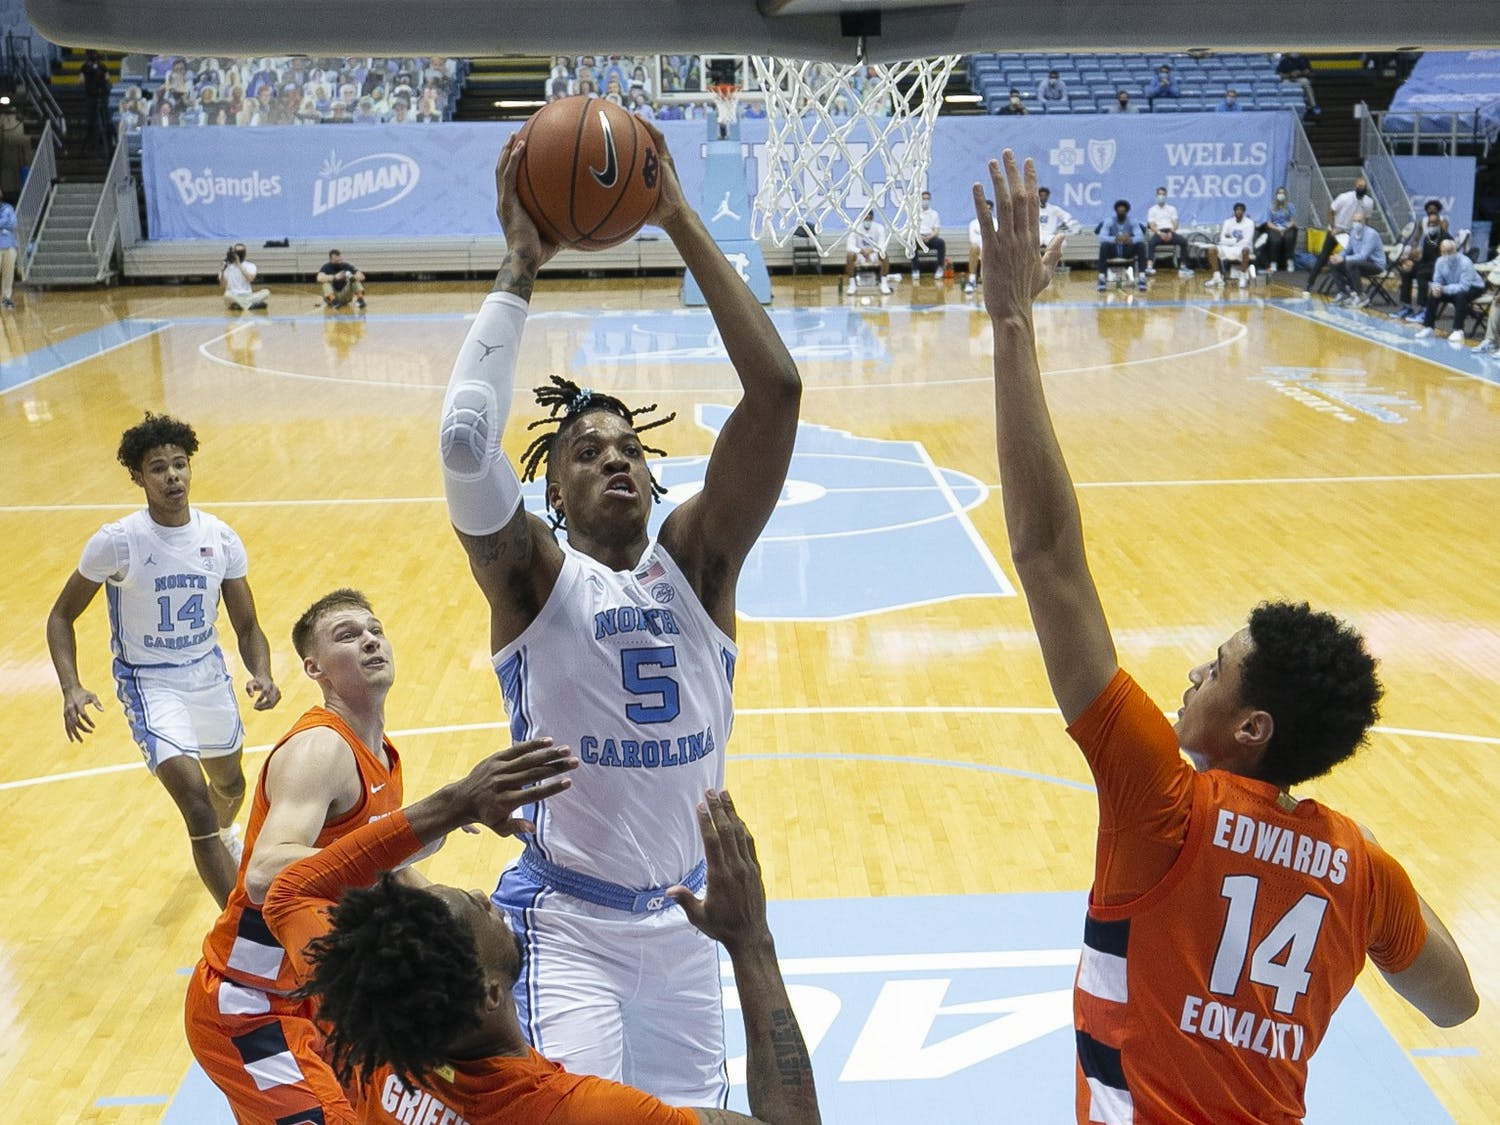 North Carolina's Armando Bacot (5) drives to the basket against Syracuse's Alan Griffin (0) and Jesse Edwards (14) in the first half on Tuesday, January 12, 2021 at the Smith Center in Chapel Hill, NC. Photo courtesy of Robert Willett.